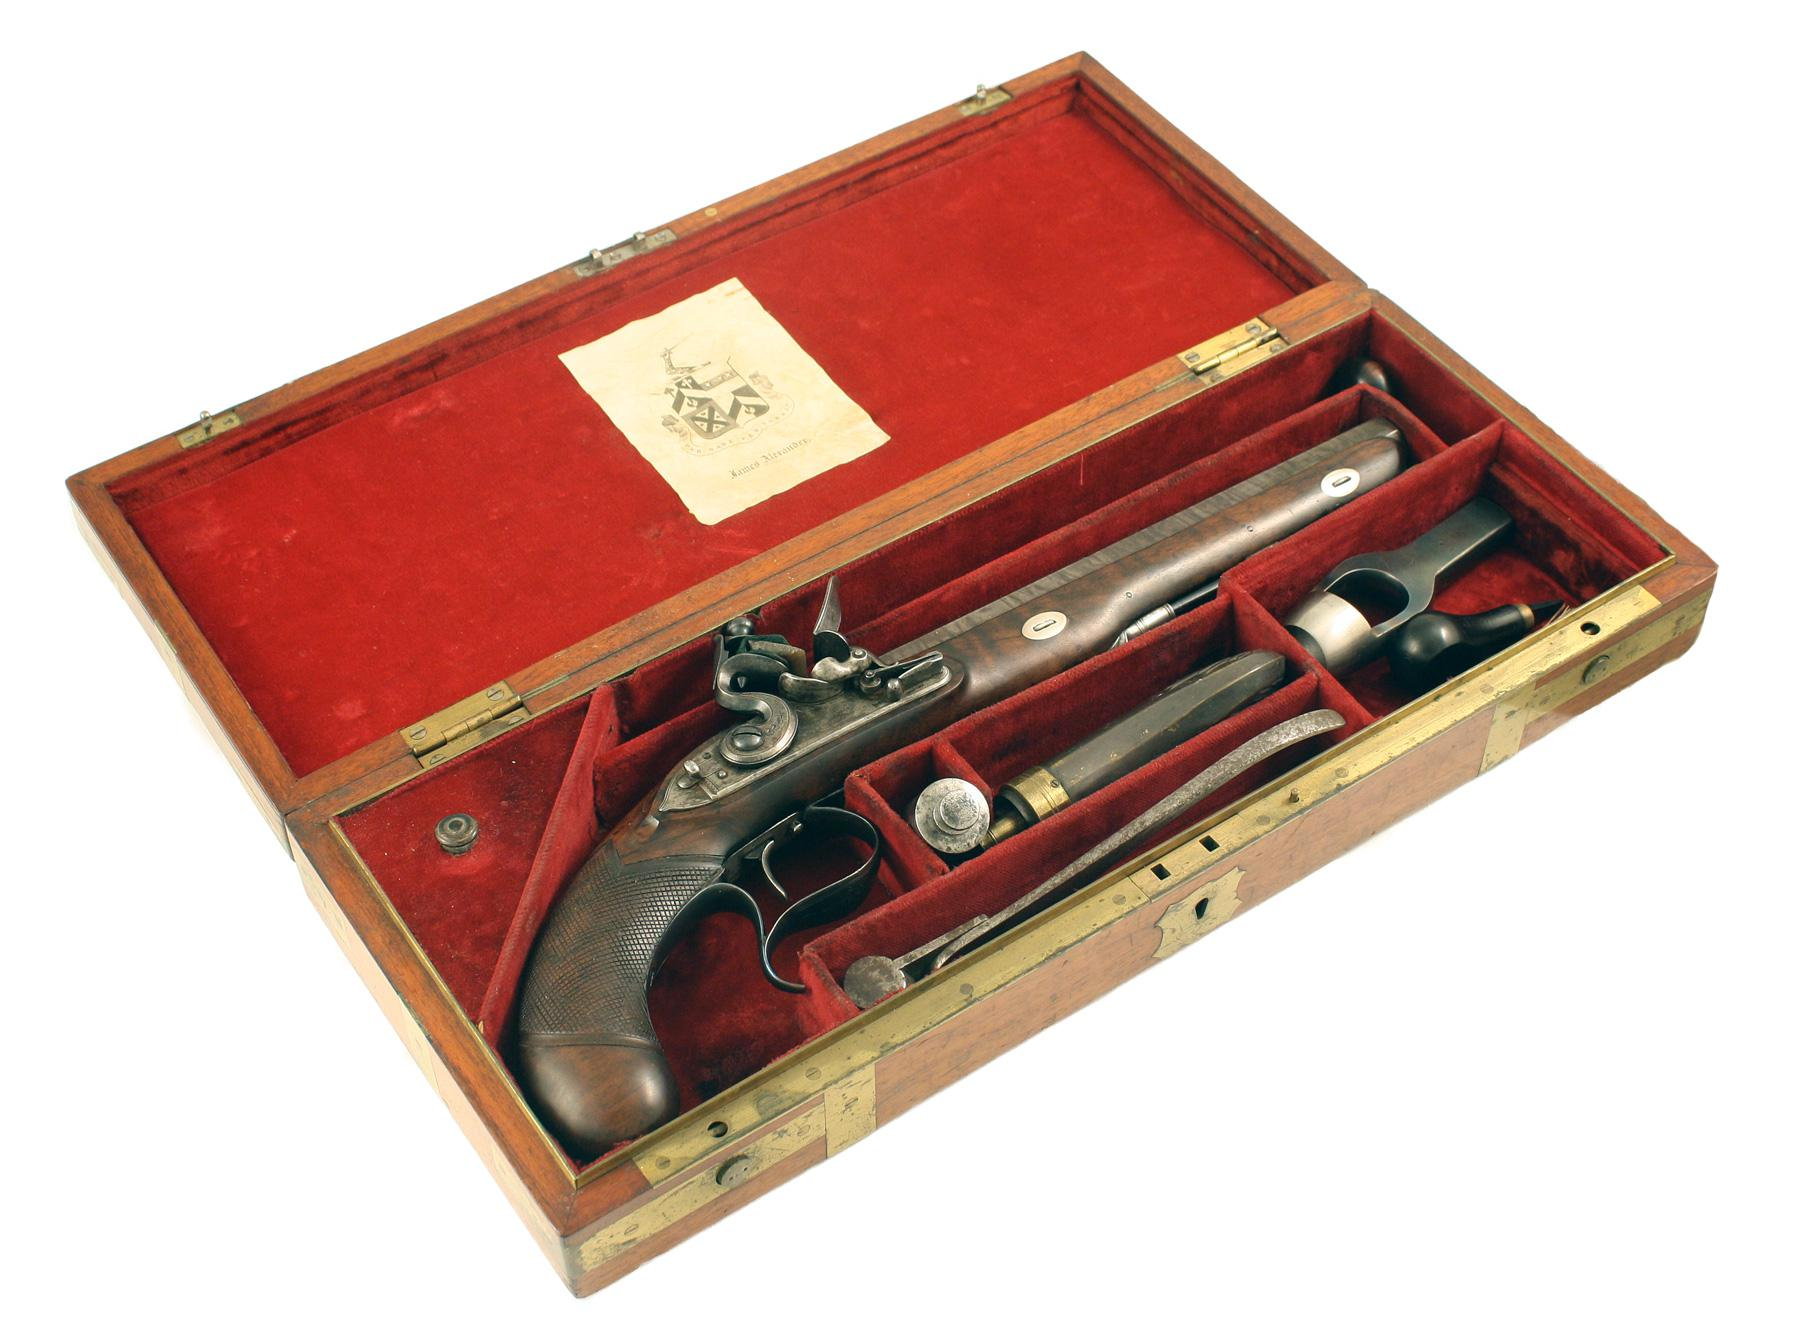 A Cased Flintlock Pistol